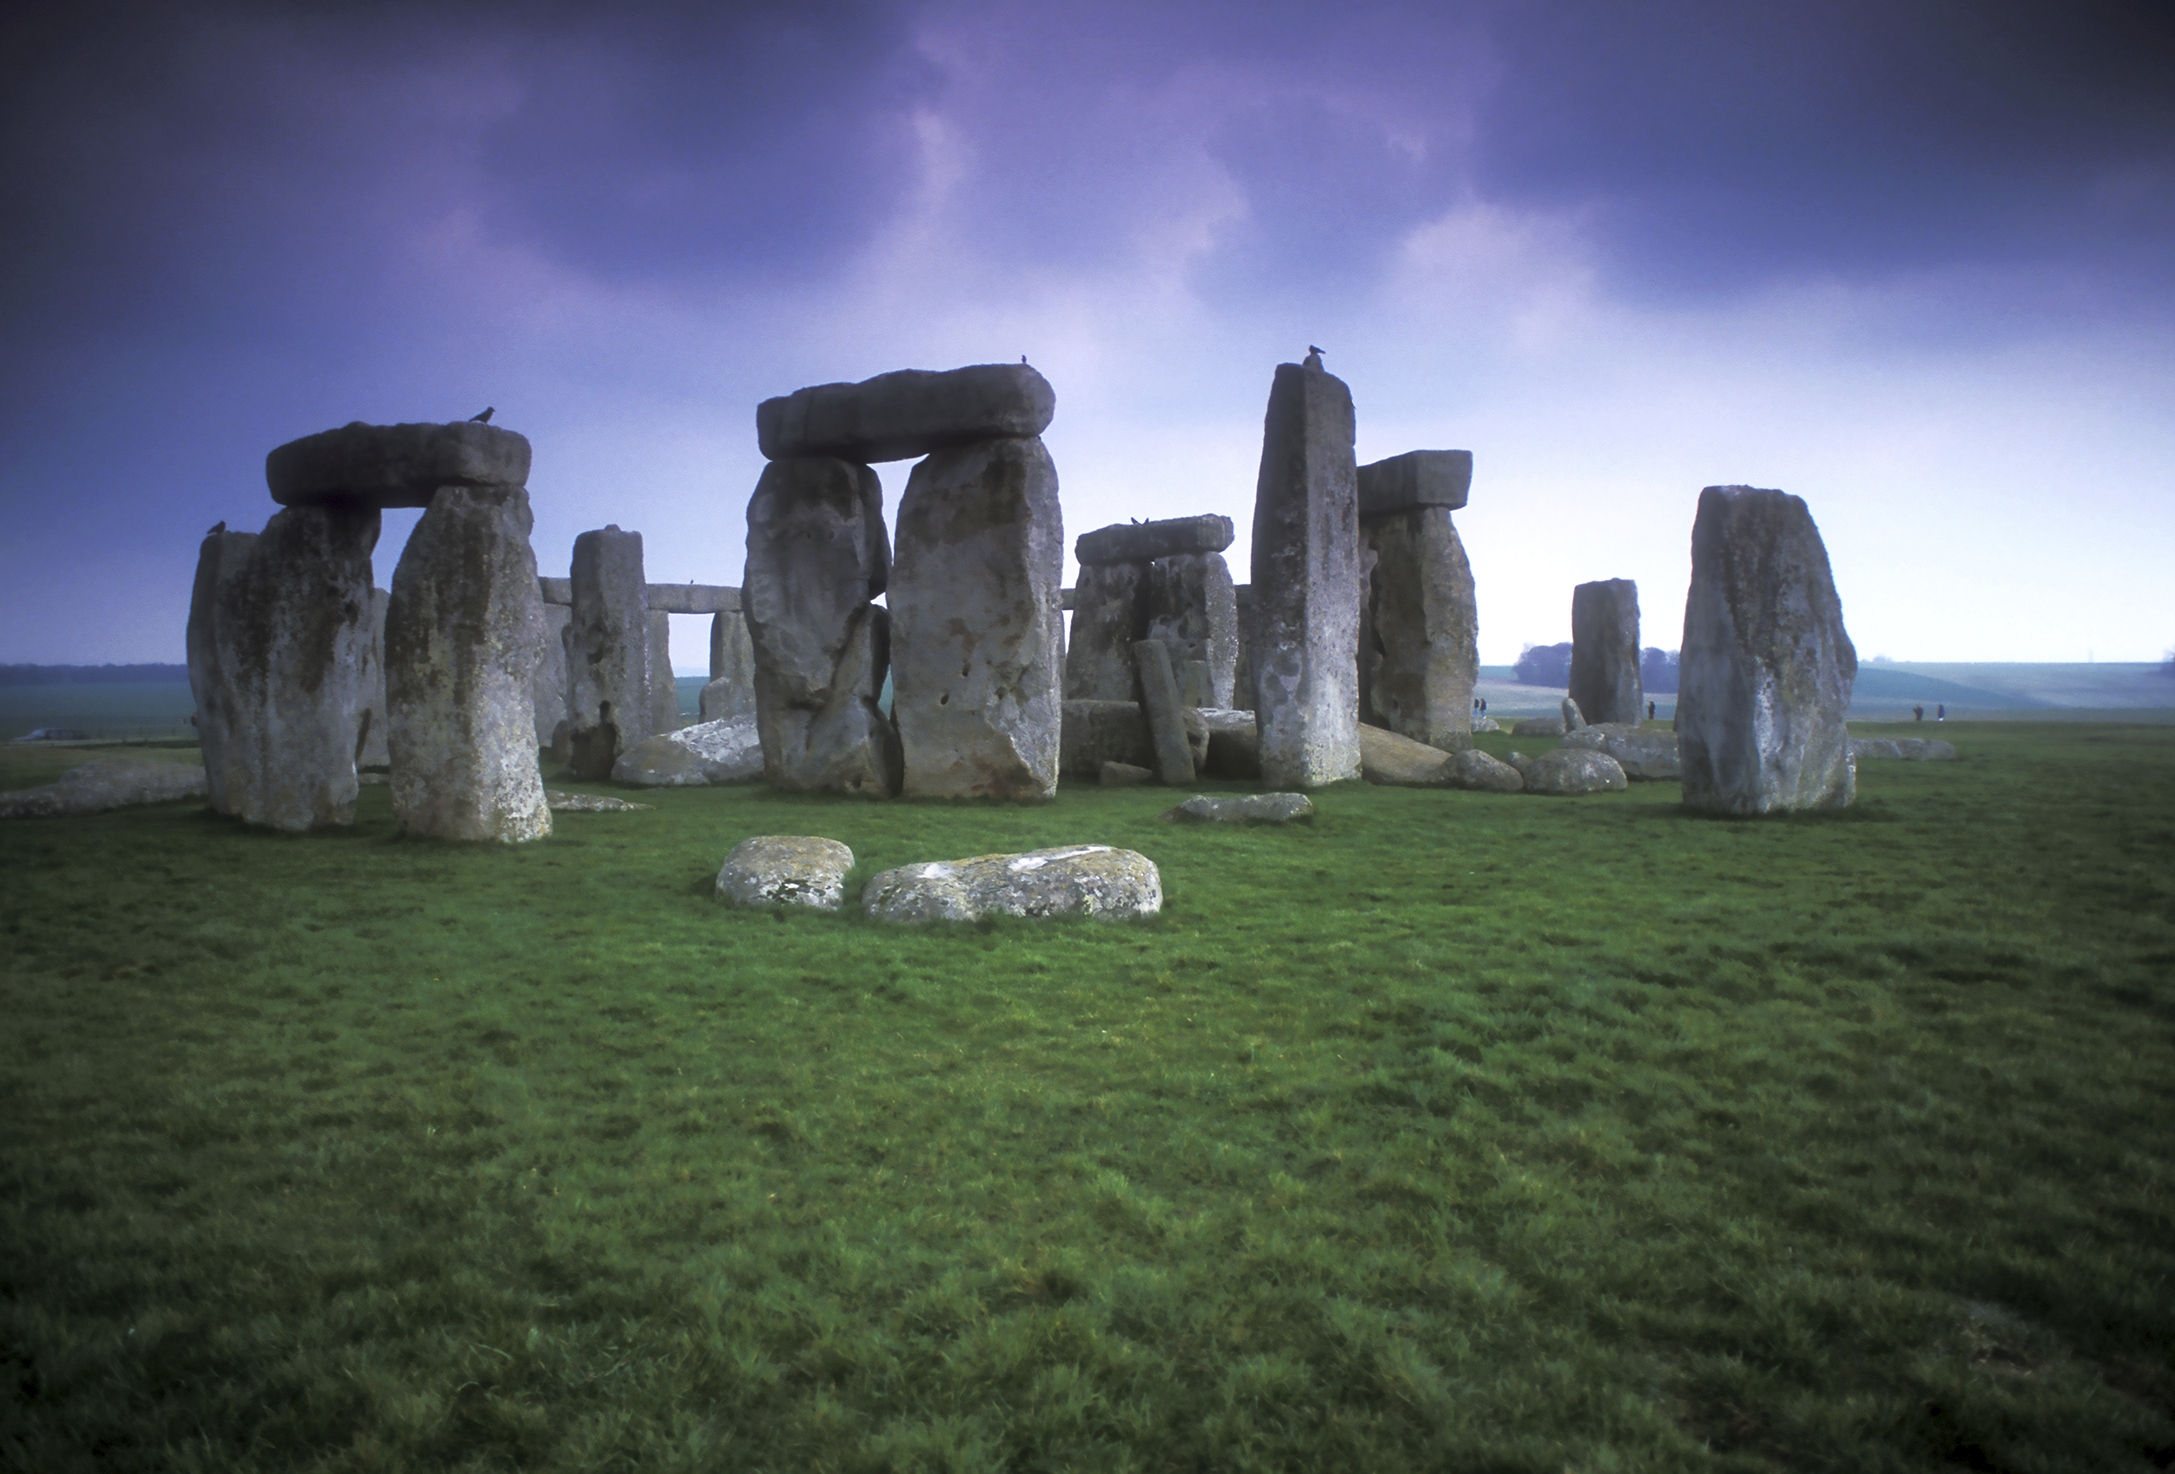 Tunnel under Stonehenge could 'damage' landmark